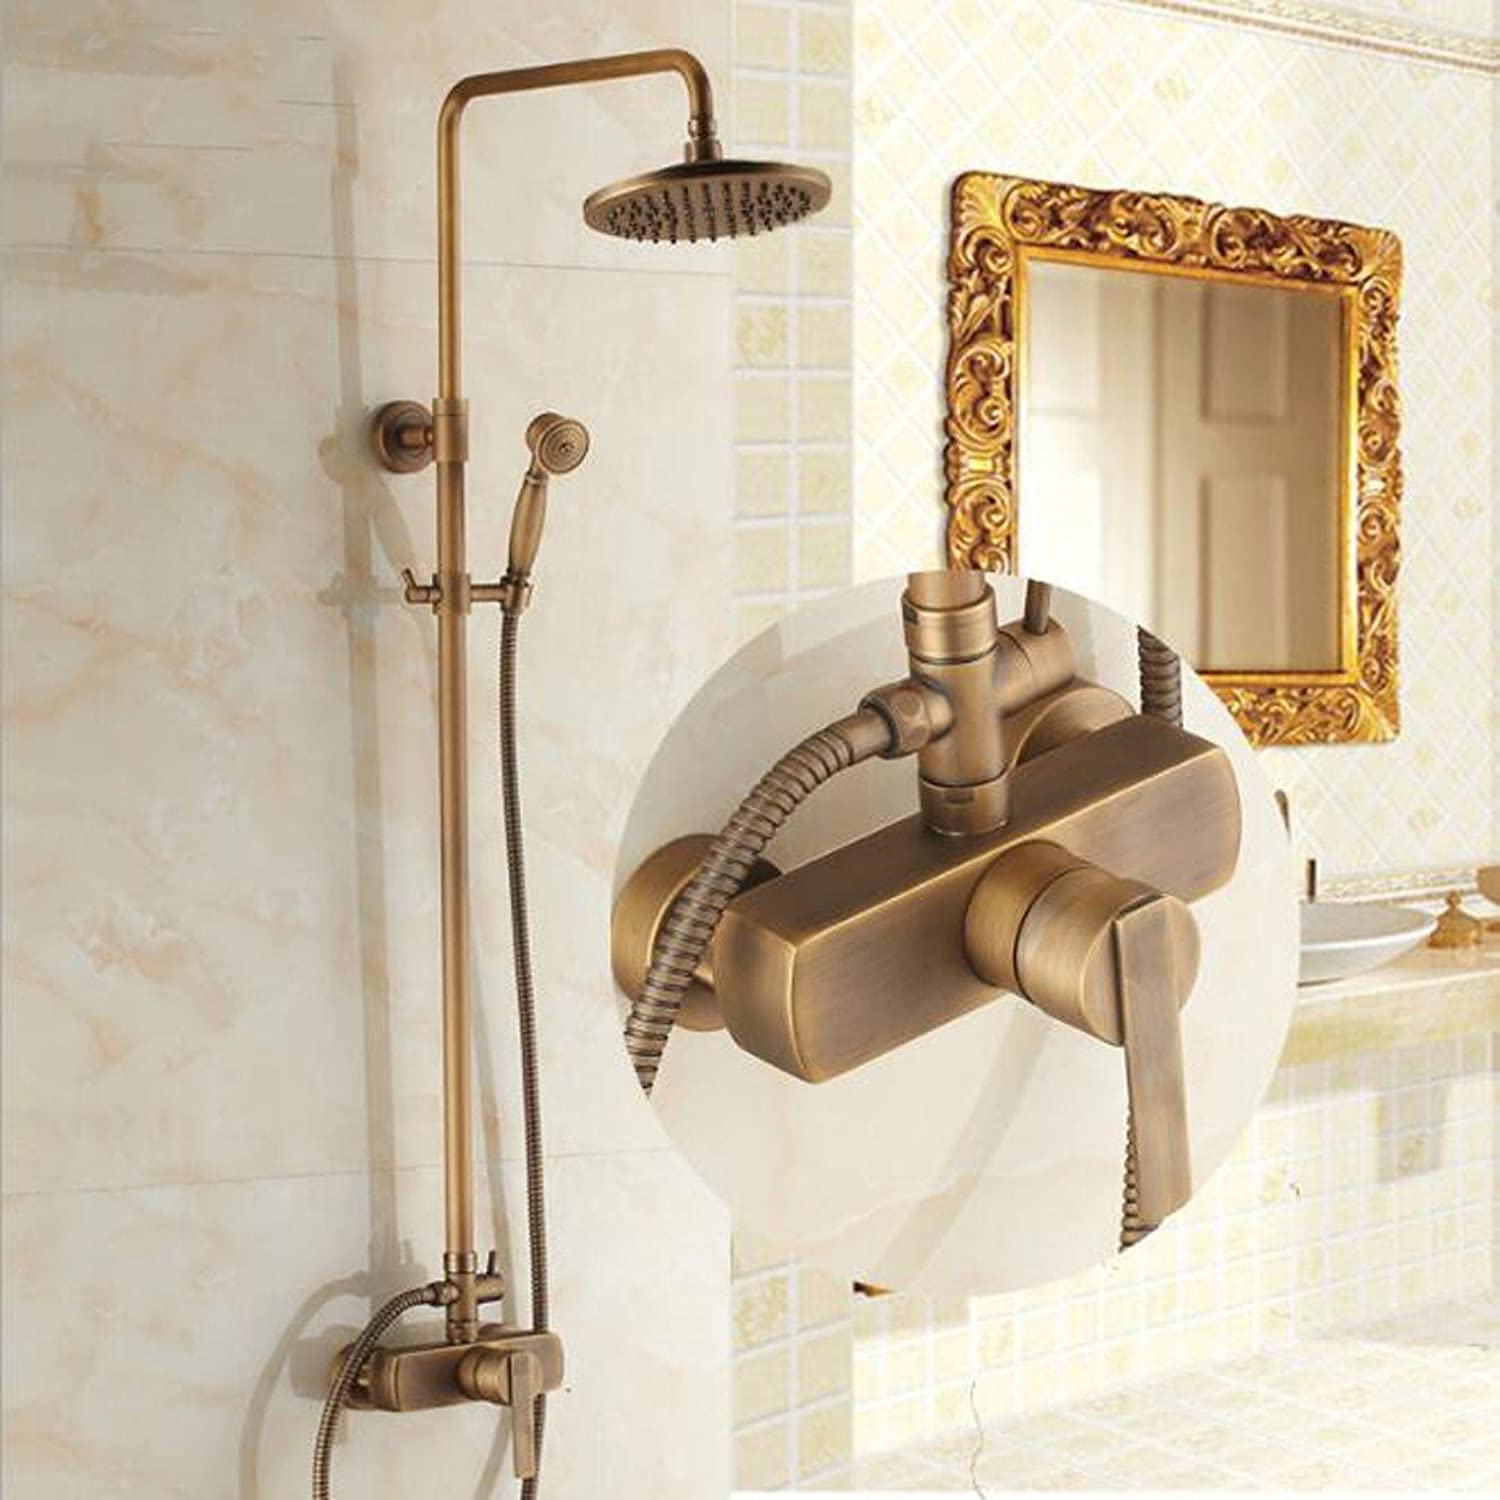 SJQKA shower set High Quality All Copper Antique Shower Shower Set Can Be Raised Square Hot And Cold Shower,A